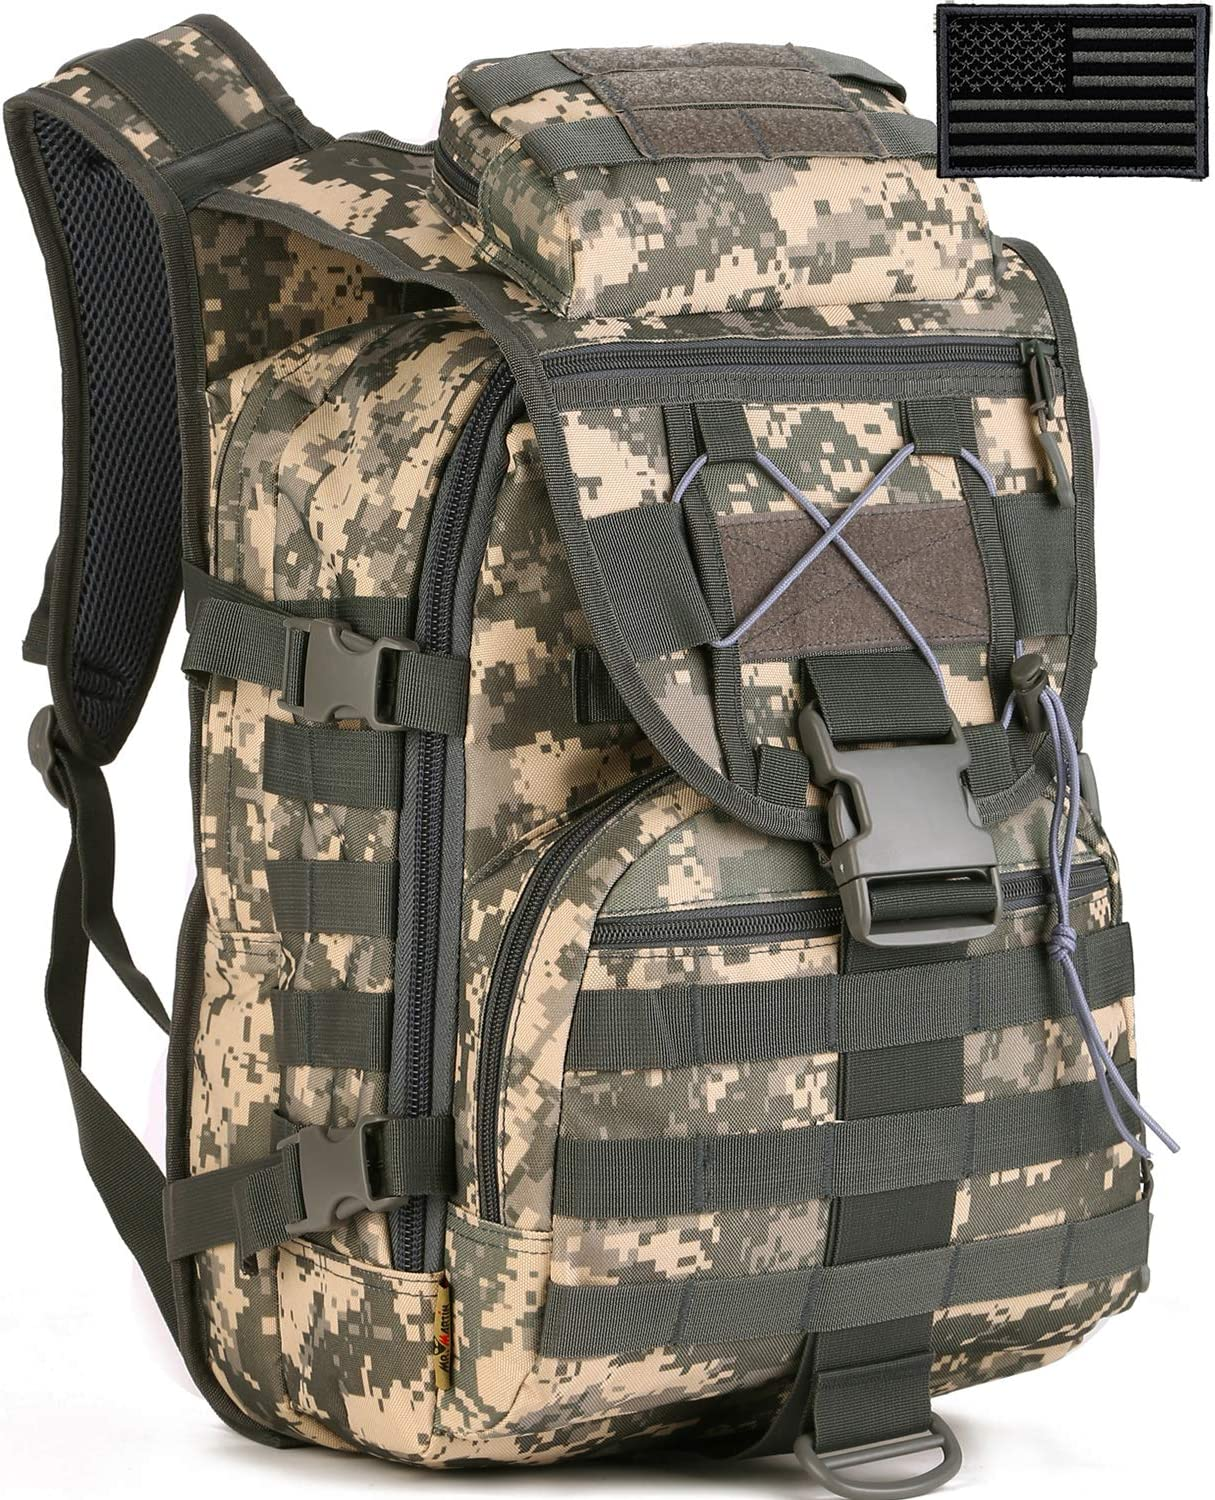 Protector Plus Tactical Max 58% OFF Backpack Assault Military MOLLE Daypack Superior